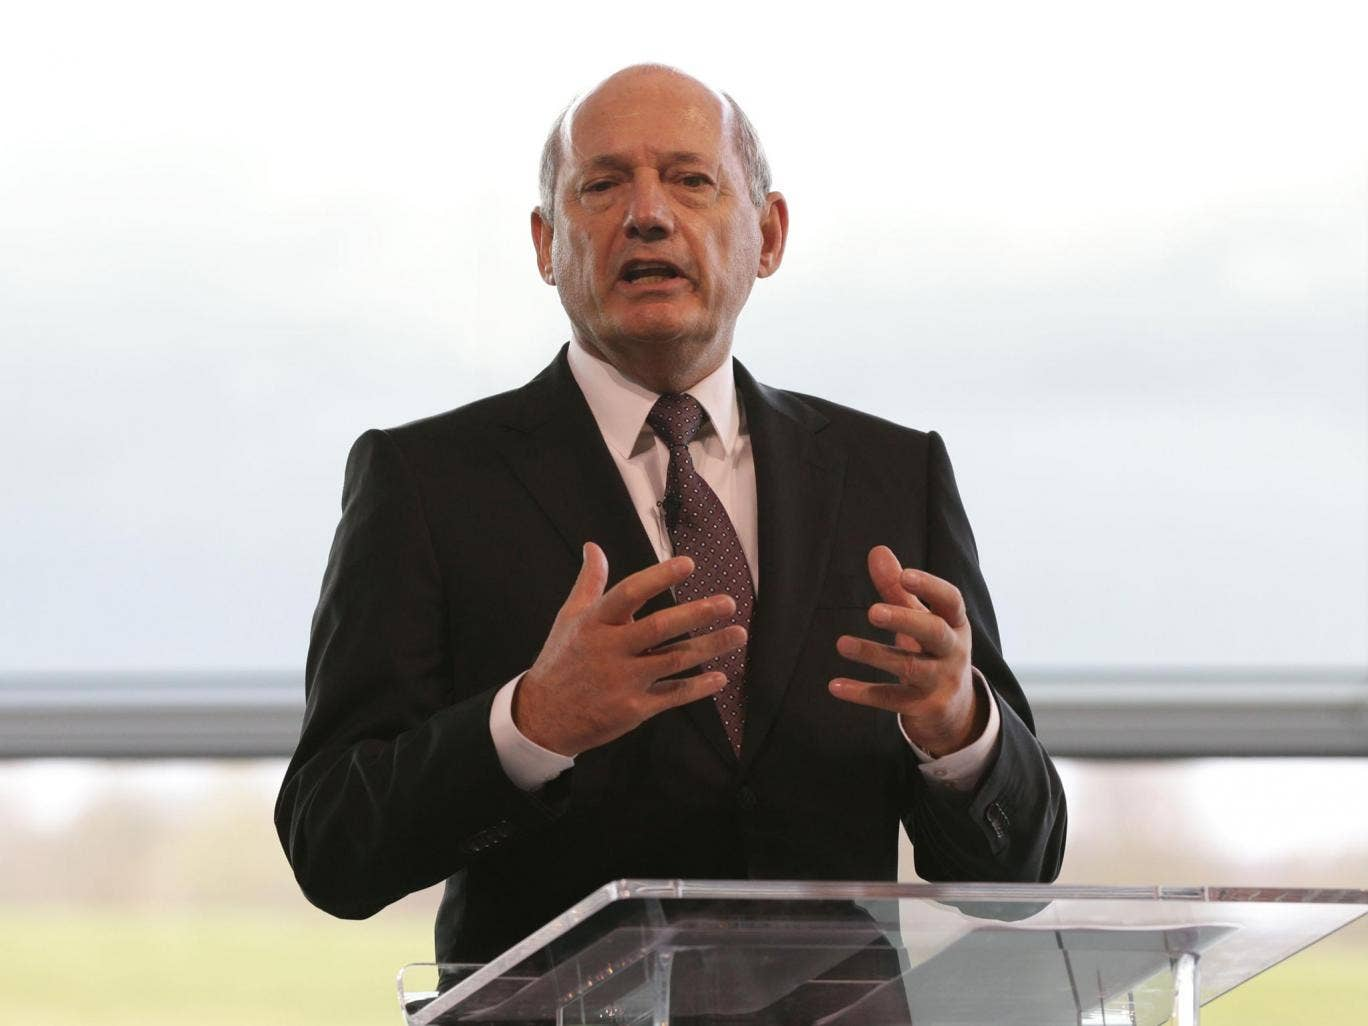 Ron Dennis, CEO of the McLaren Group says team members need to sharpen up